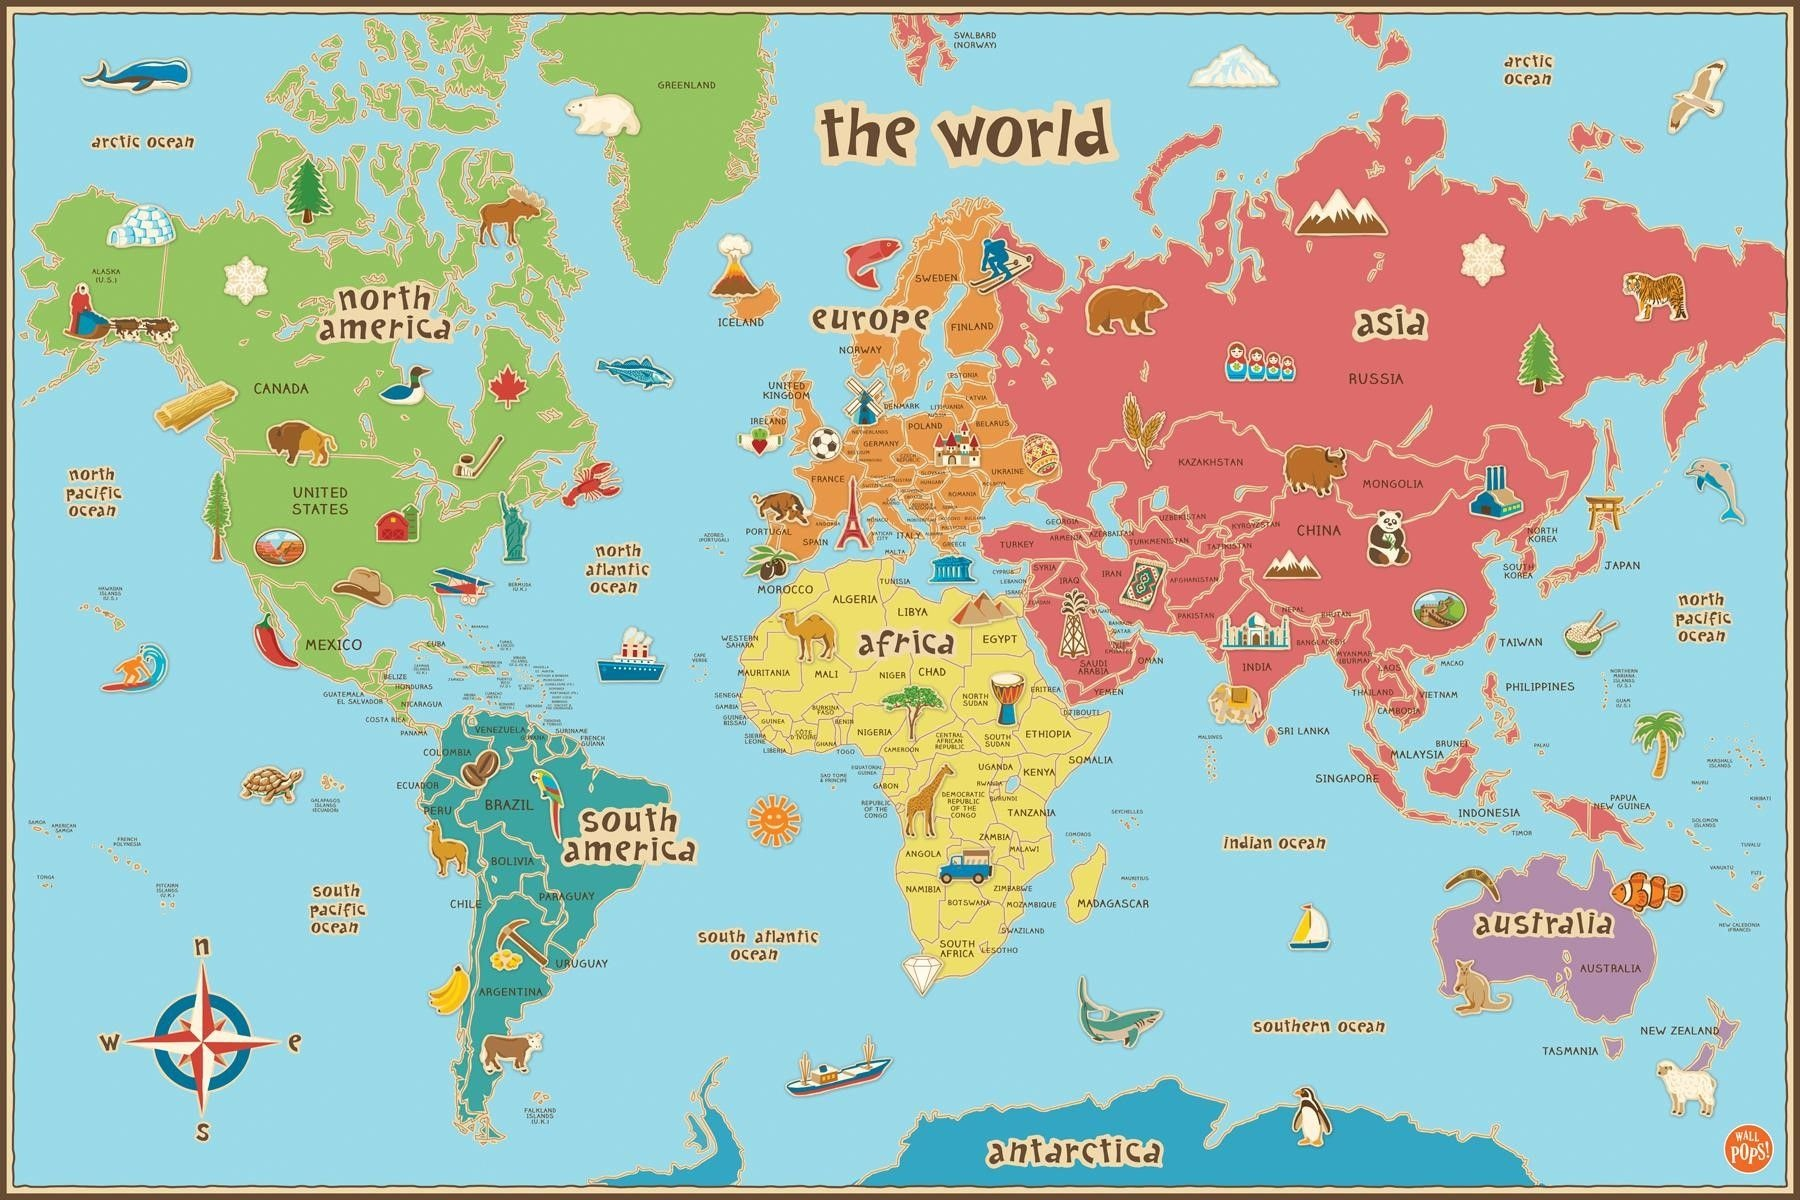 Free Printable World Map For Kids Maps And | Gary's Scattered Mind - Free Printable World Map Images